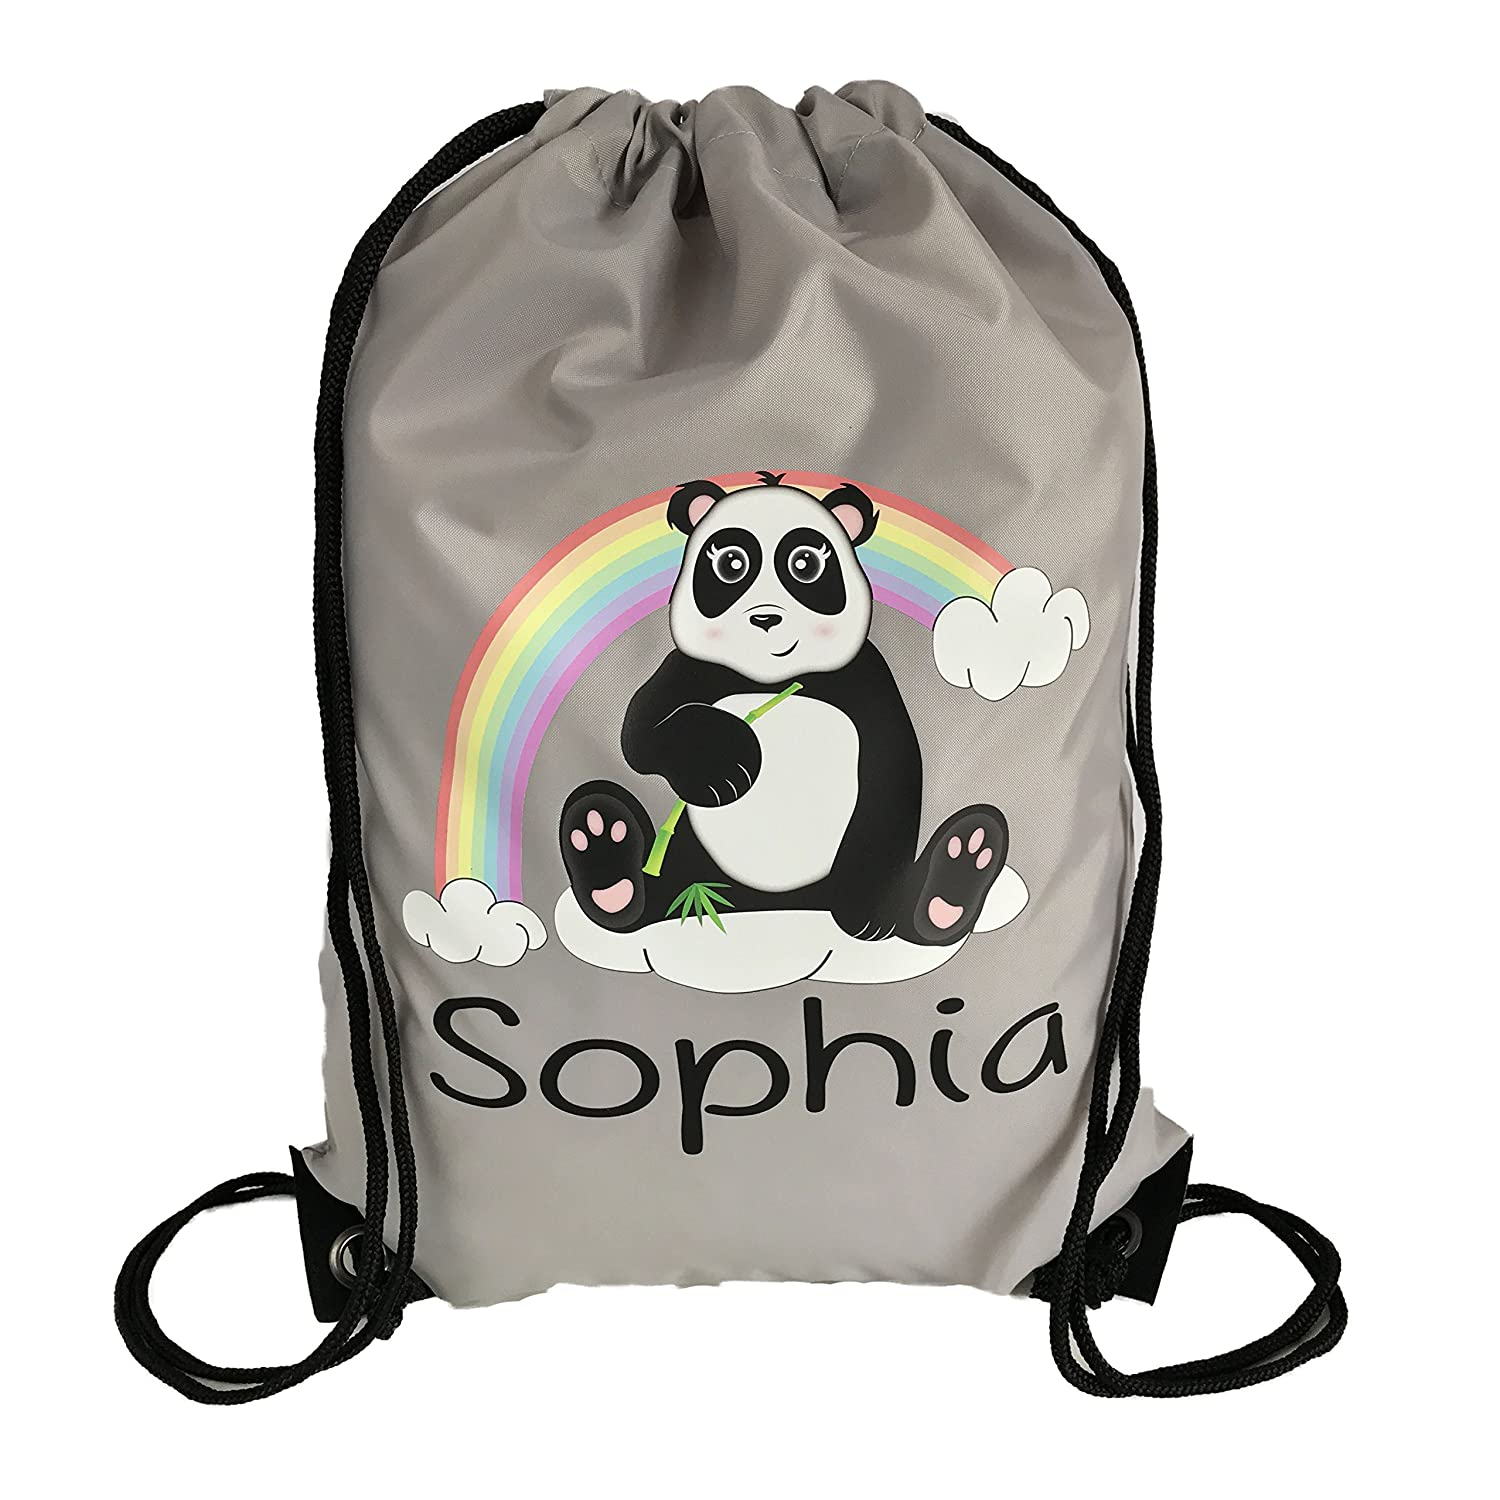 SWIMMING BAG DANCE PE GREAT KIDS GIFT /& NAMED TOO PERSONALISED PANDA GYM